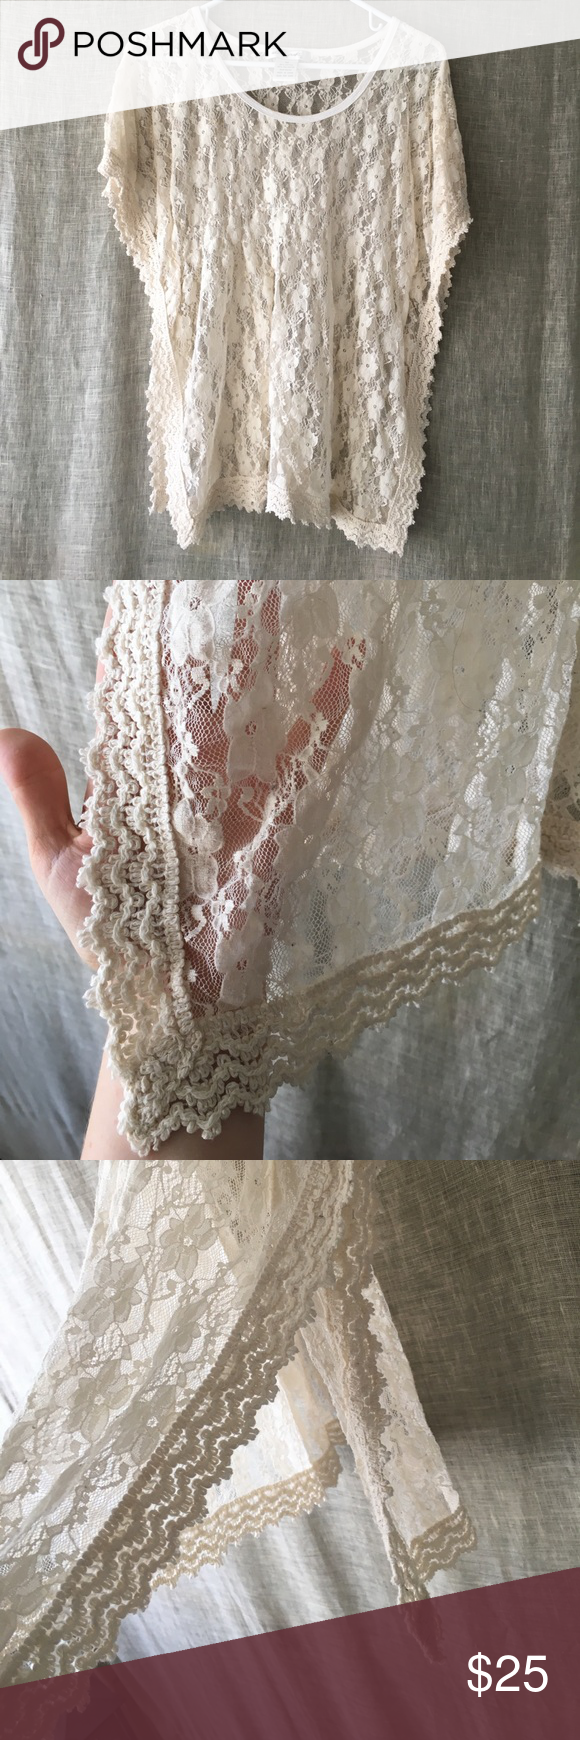 One of my favorites for a long time 💕 Cream top with flowered lace! This was one of my favorite shirts for a long time. When someone ask you if that is the only shirt you own I think it's time to retire it to a new user Tops Blouses